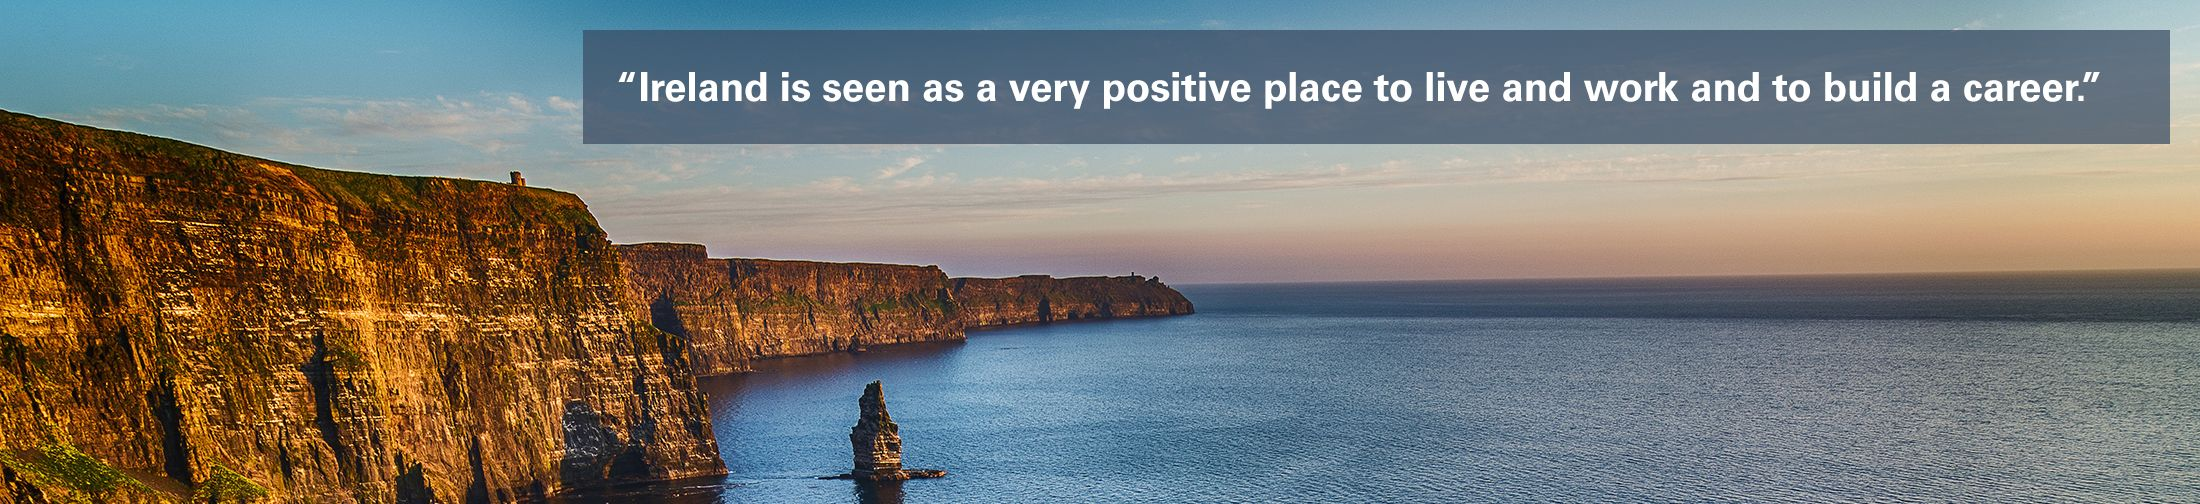 """Cliffs of Moher with text overlaid """"Ireland is seen as a very positive place to live and work and to build a career."""""""